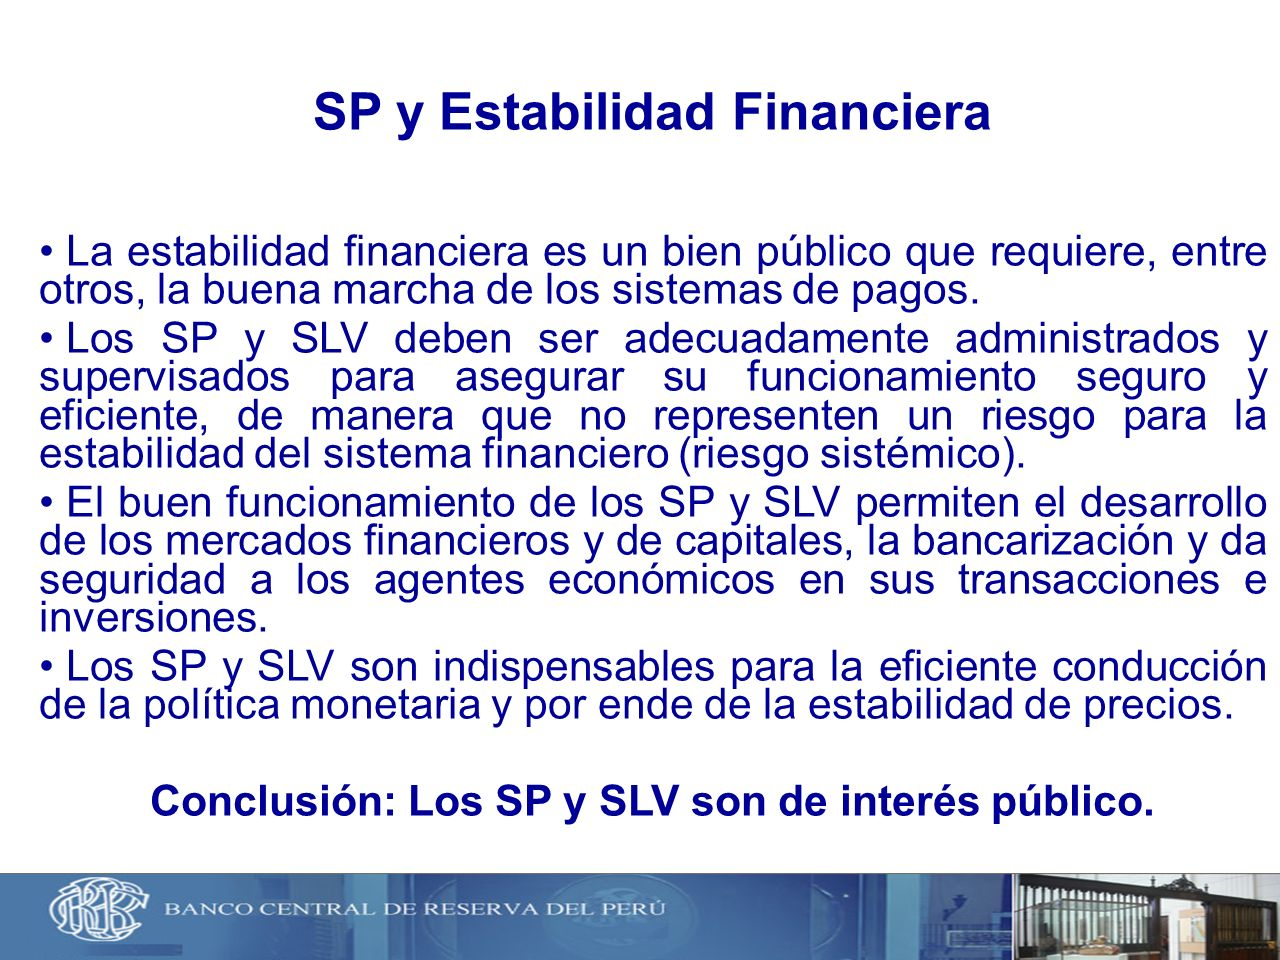 SP y Estabilidad Financiera